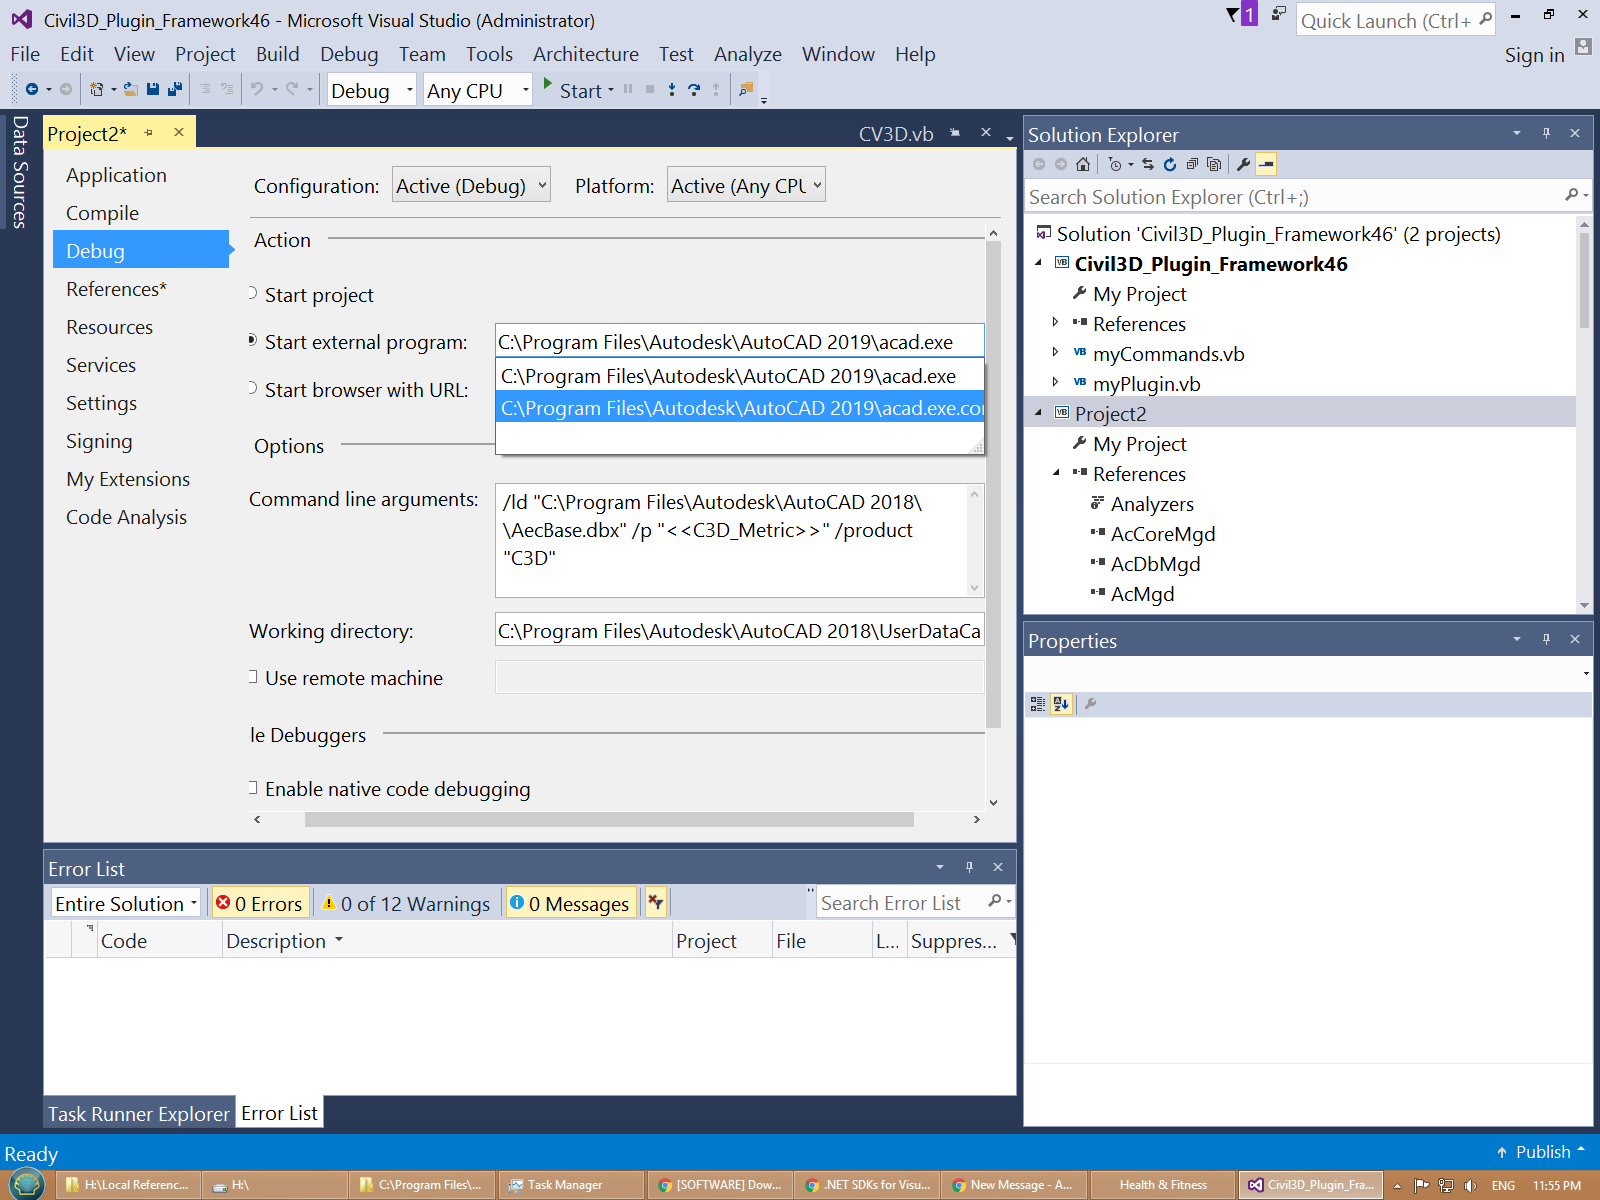 Setup Visual-studio-2015-based solution to work with Civil 3D 2019